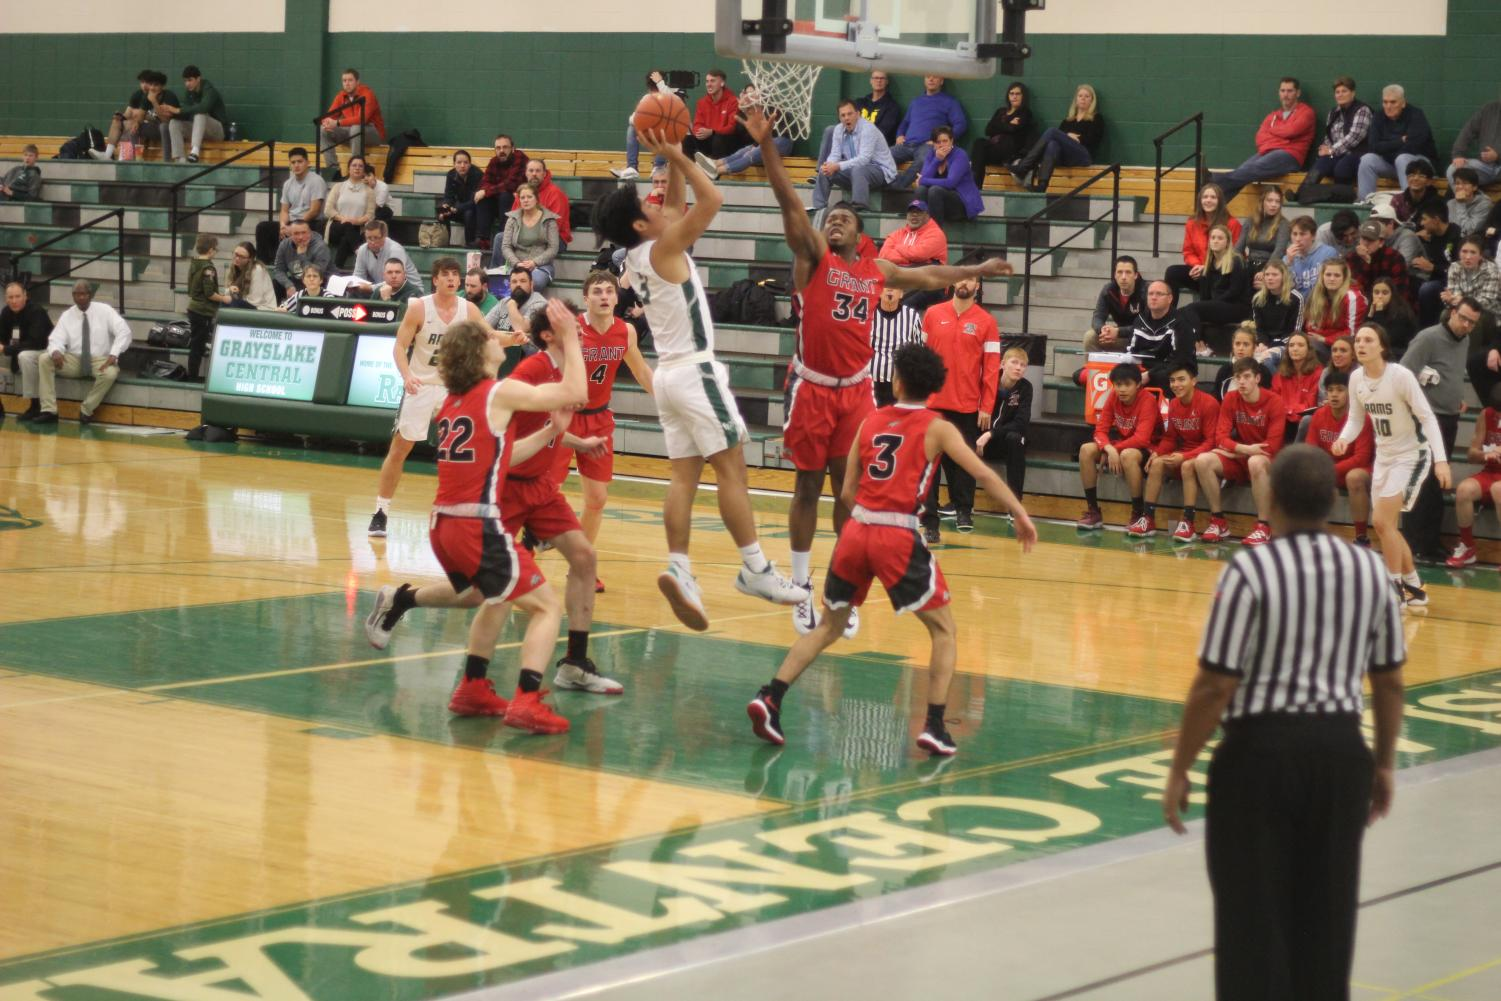 Senior Dillan Dumanlang avoids a block and shoots for two. Photo by Maia AlBarrak